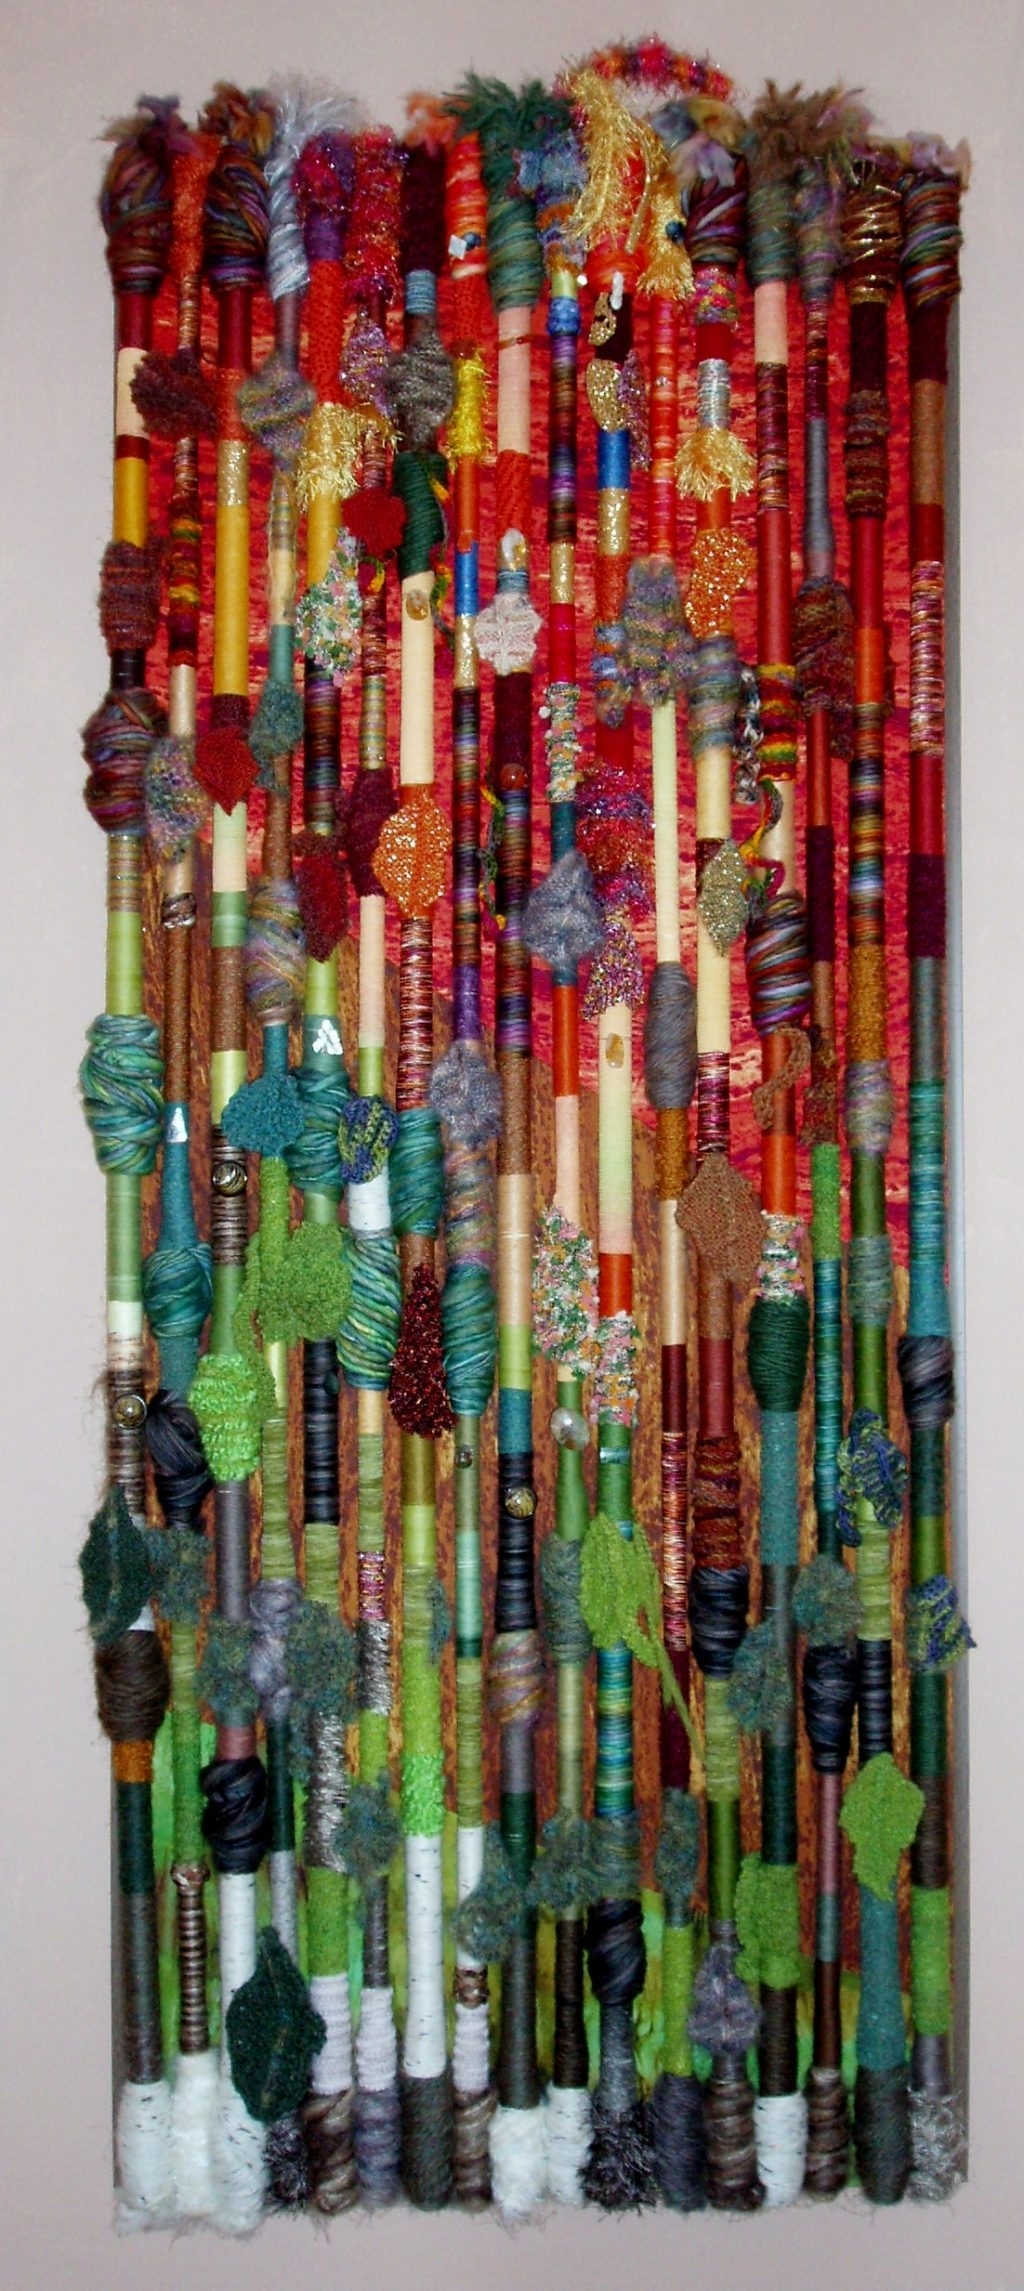 Inspirational Design Ideas Textile Wall Hangings With Fiber Art Pertaining To Most Recently Released Contemporary Textile Wall Art (View 8 of 15)